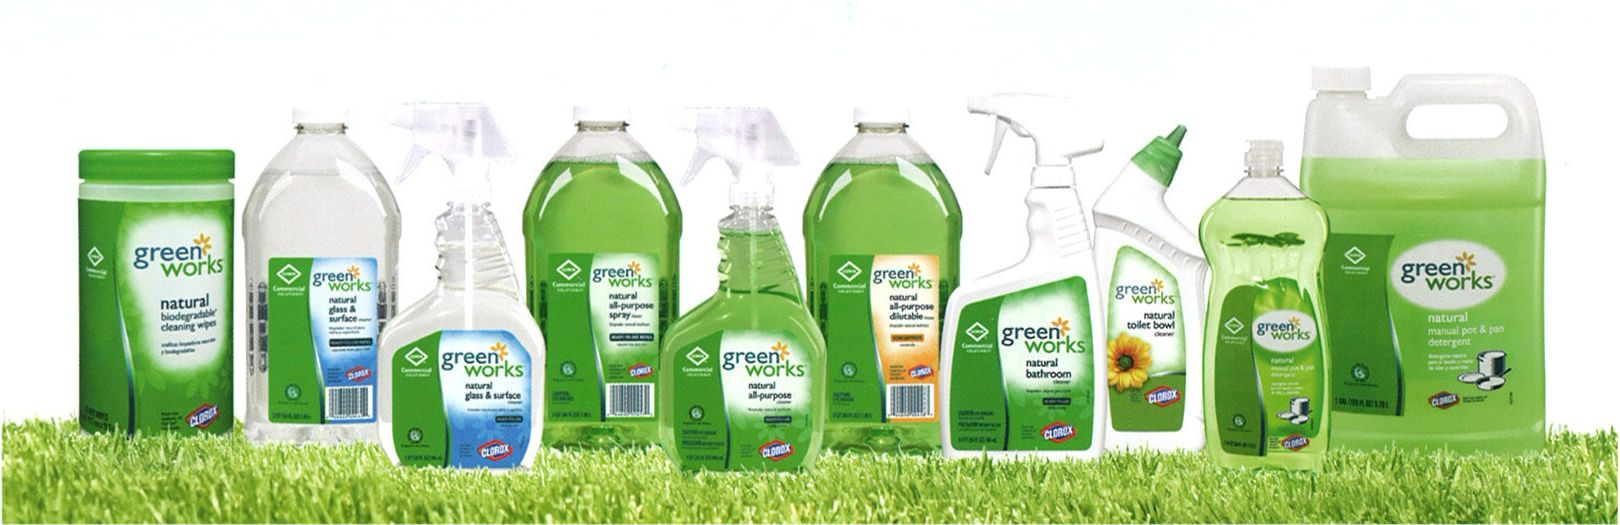 Cleaning products cleaning services eco friendly cleaning for Eco friendly home products